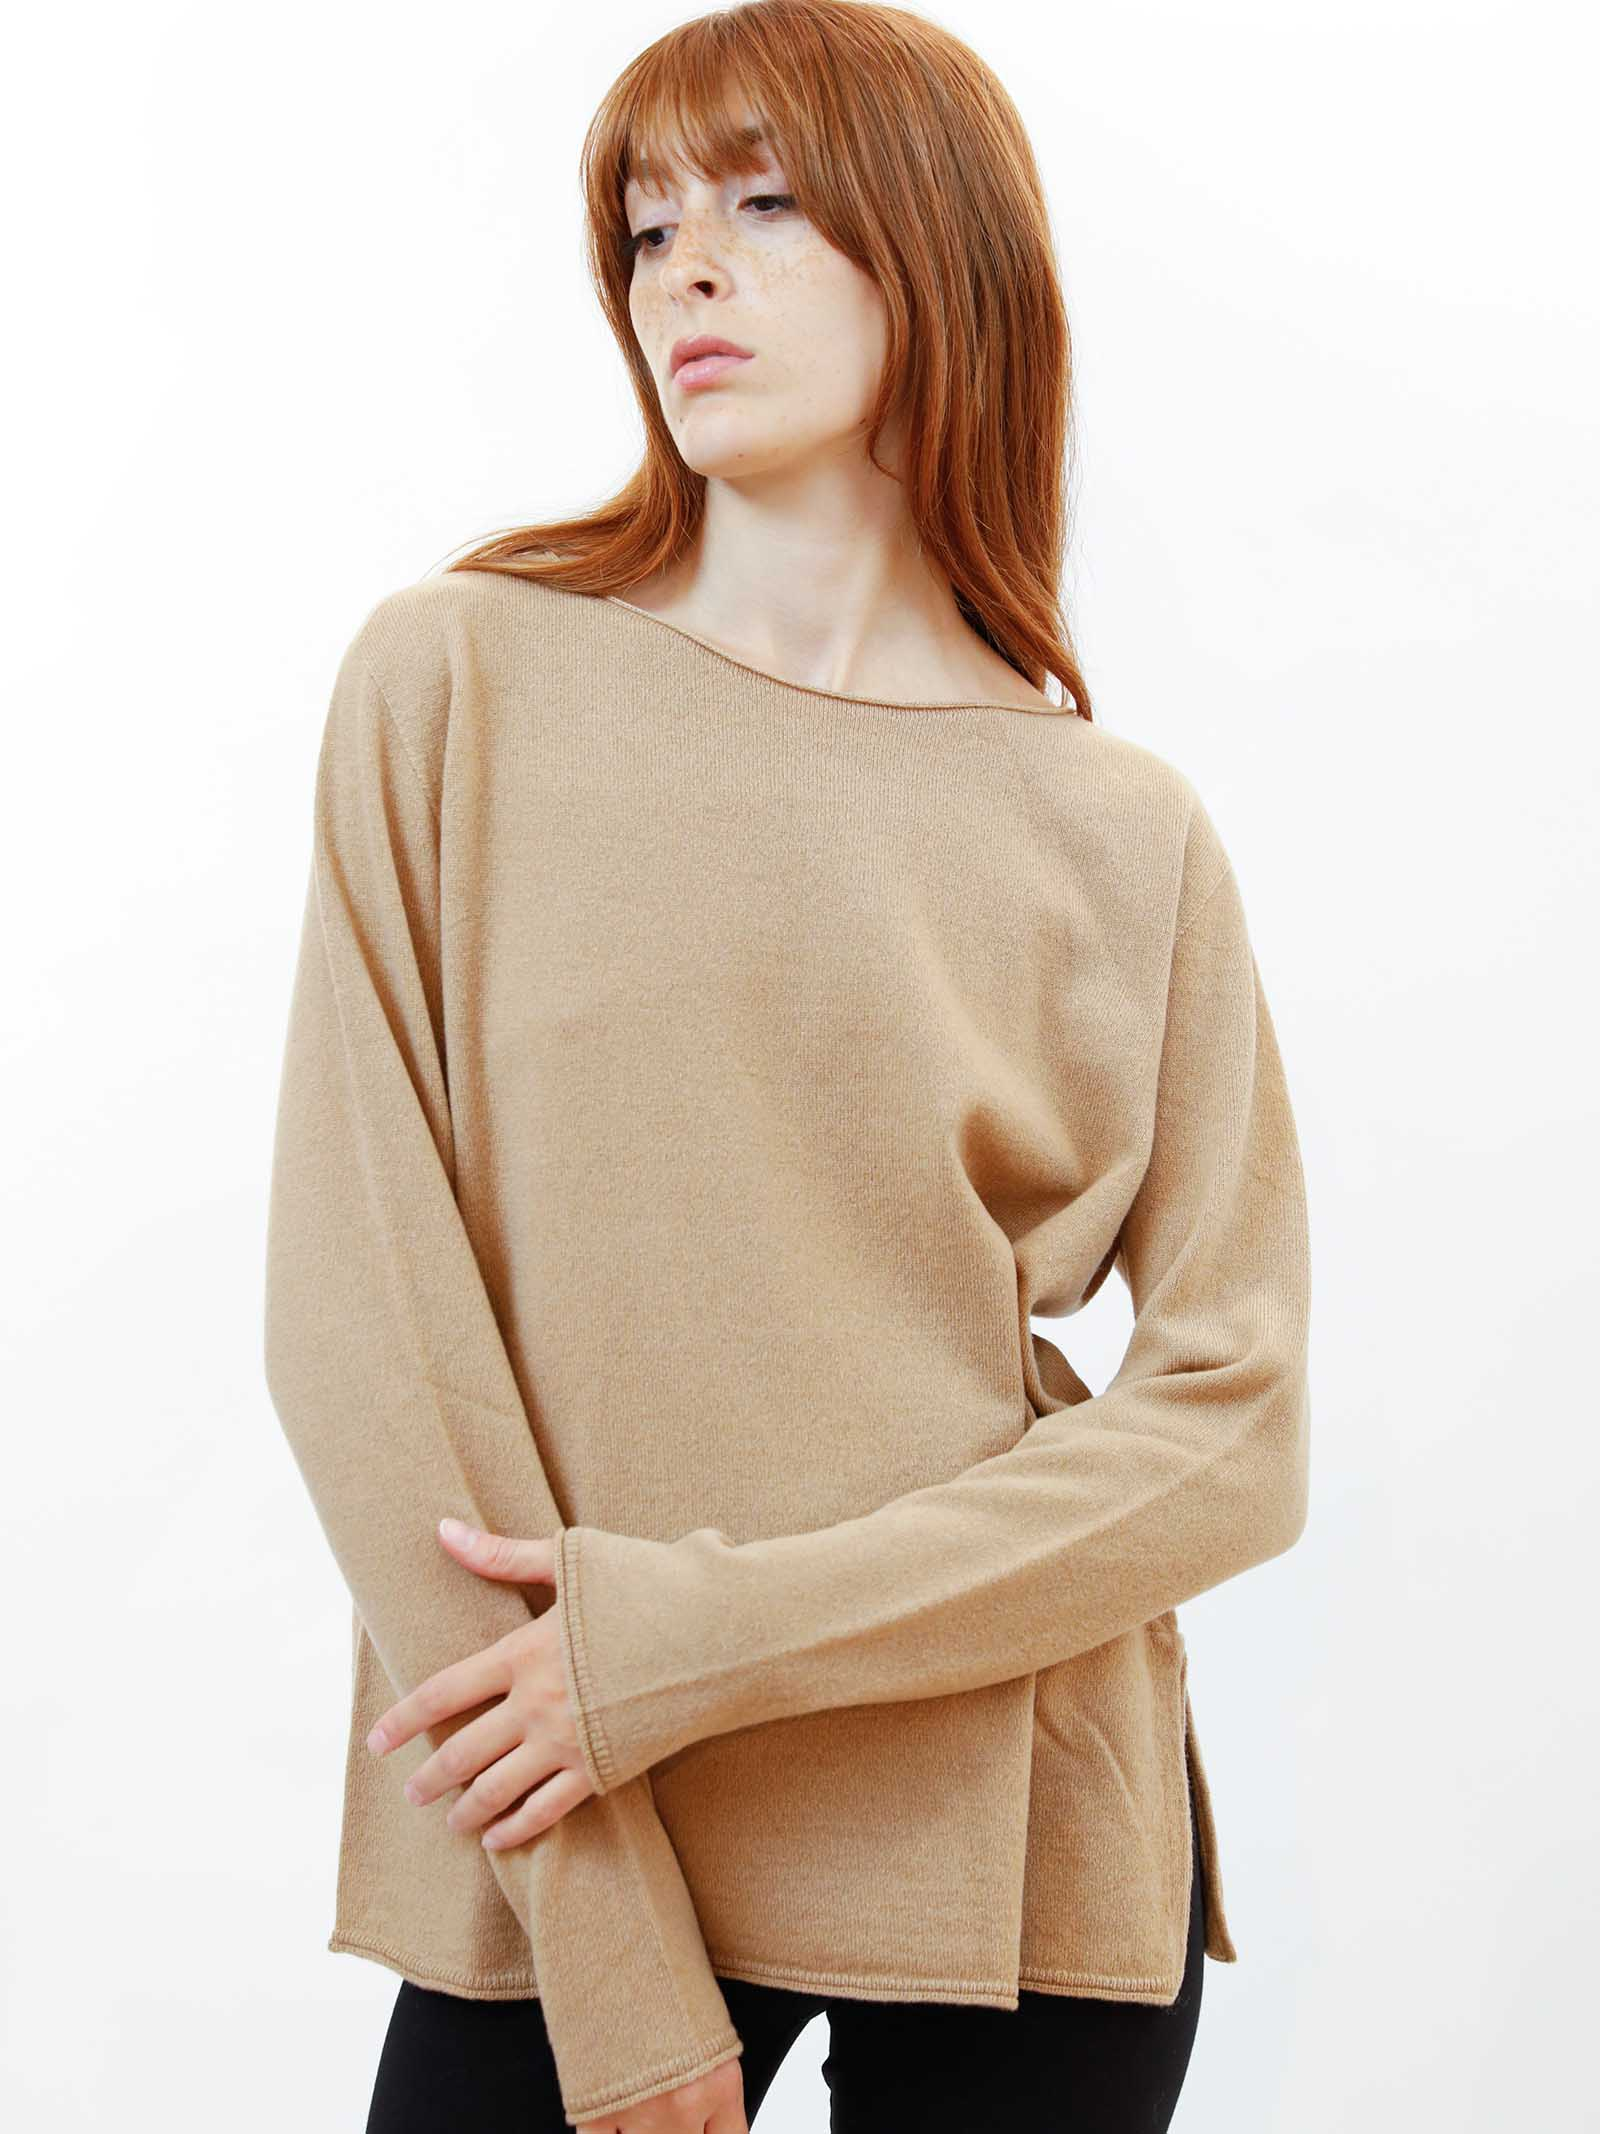 Women's Clothing Sweater in Biscuit Wool & Cashmere with Wide Neckline Maliparmi   Knitwear   JQ48787425712071